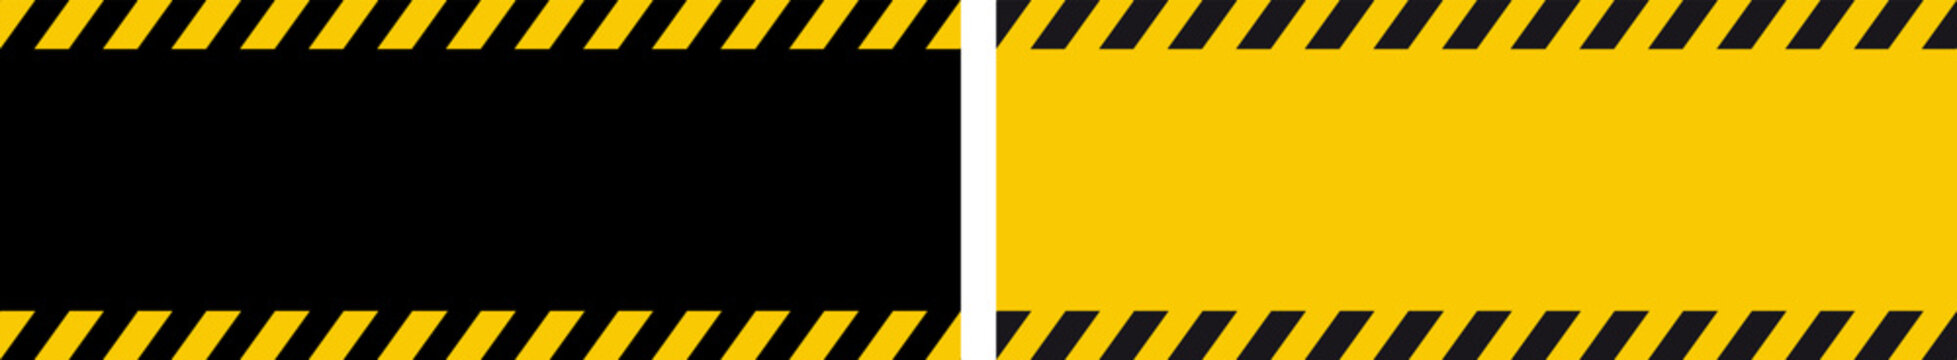 Danger warning banner with black and yellow strips